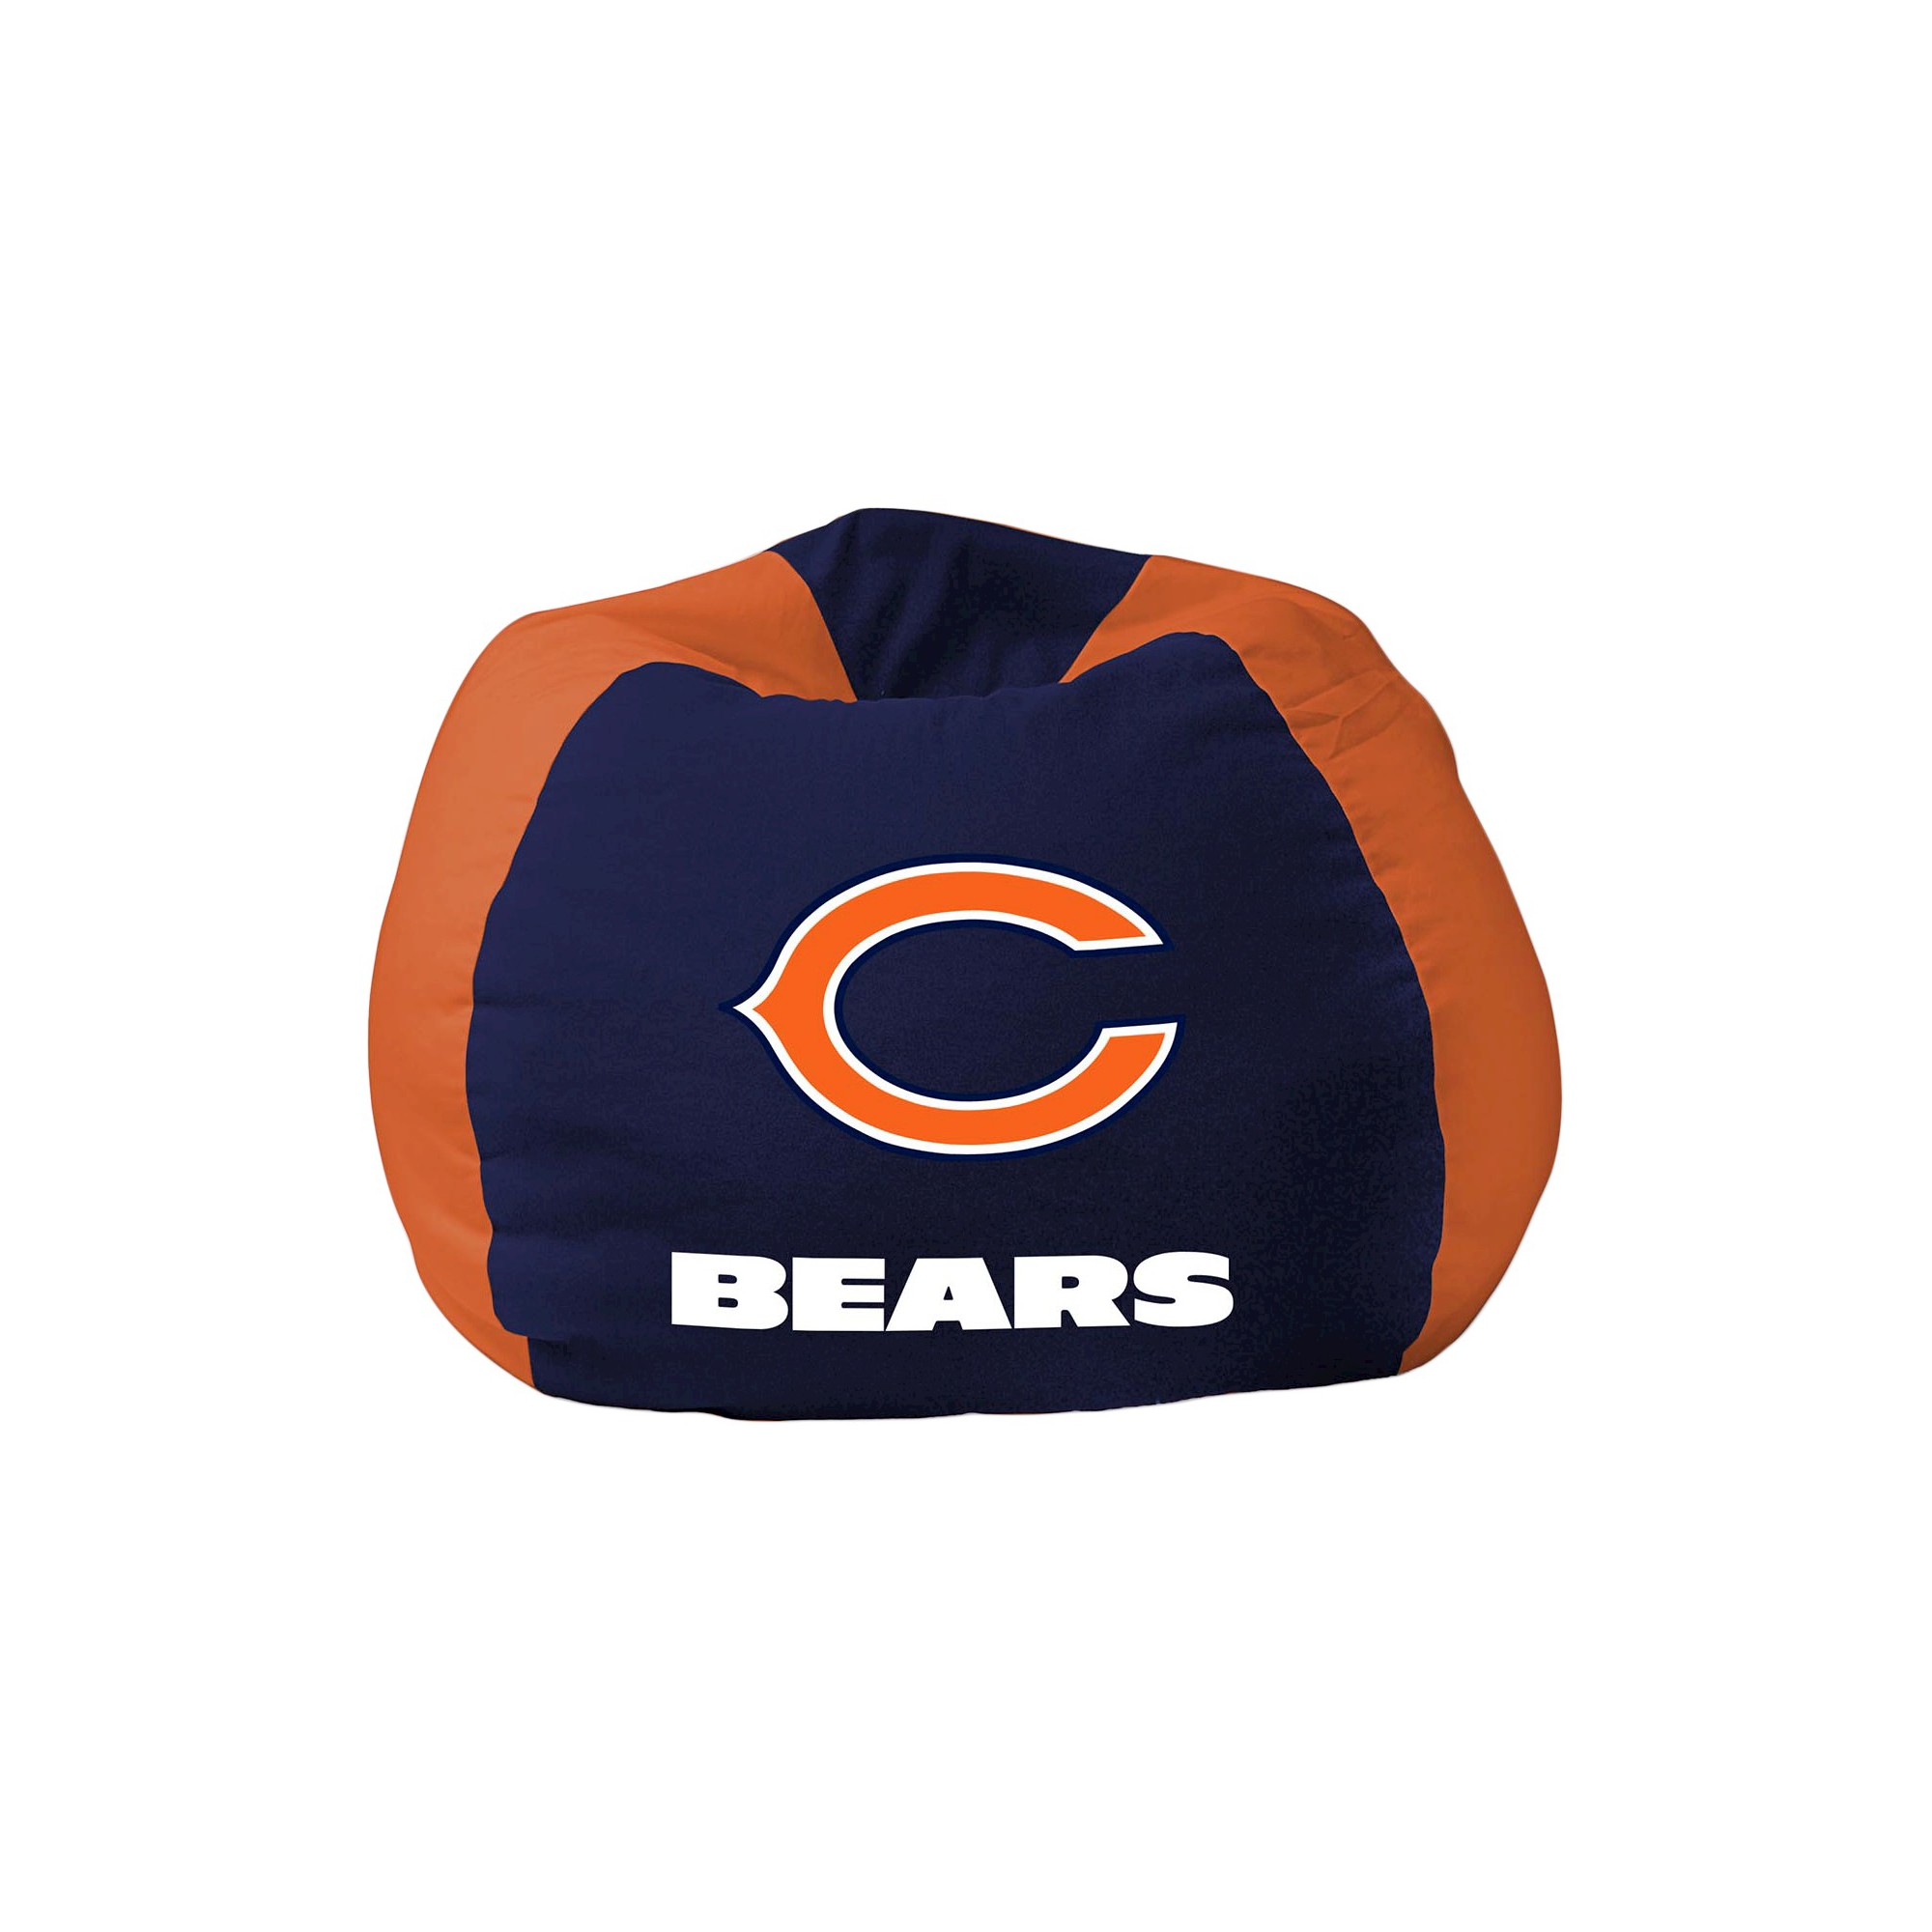 Enjoyable Chicago Bears Northwest Bean Bag Chair Products In 2019 Alphanode Cool Chair Designs And Ideas Alphanodeonline